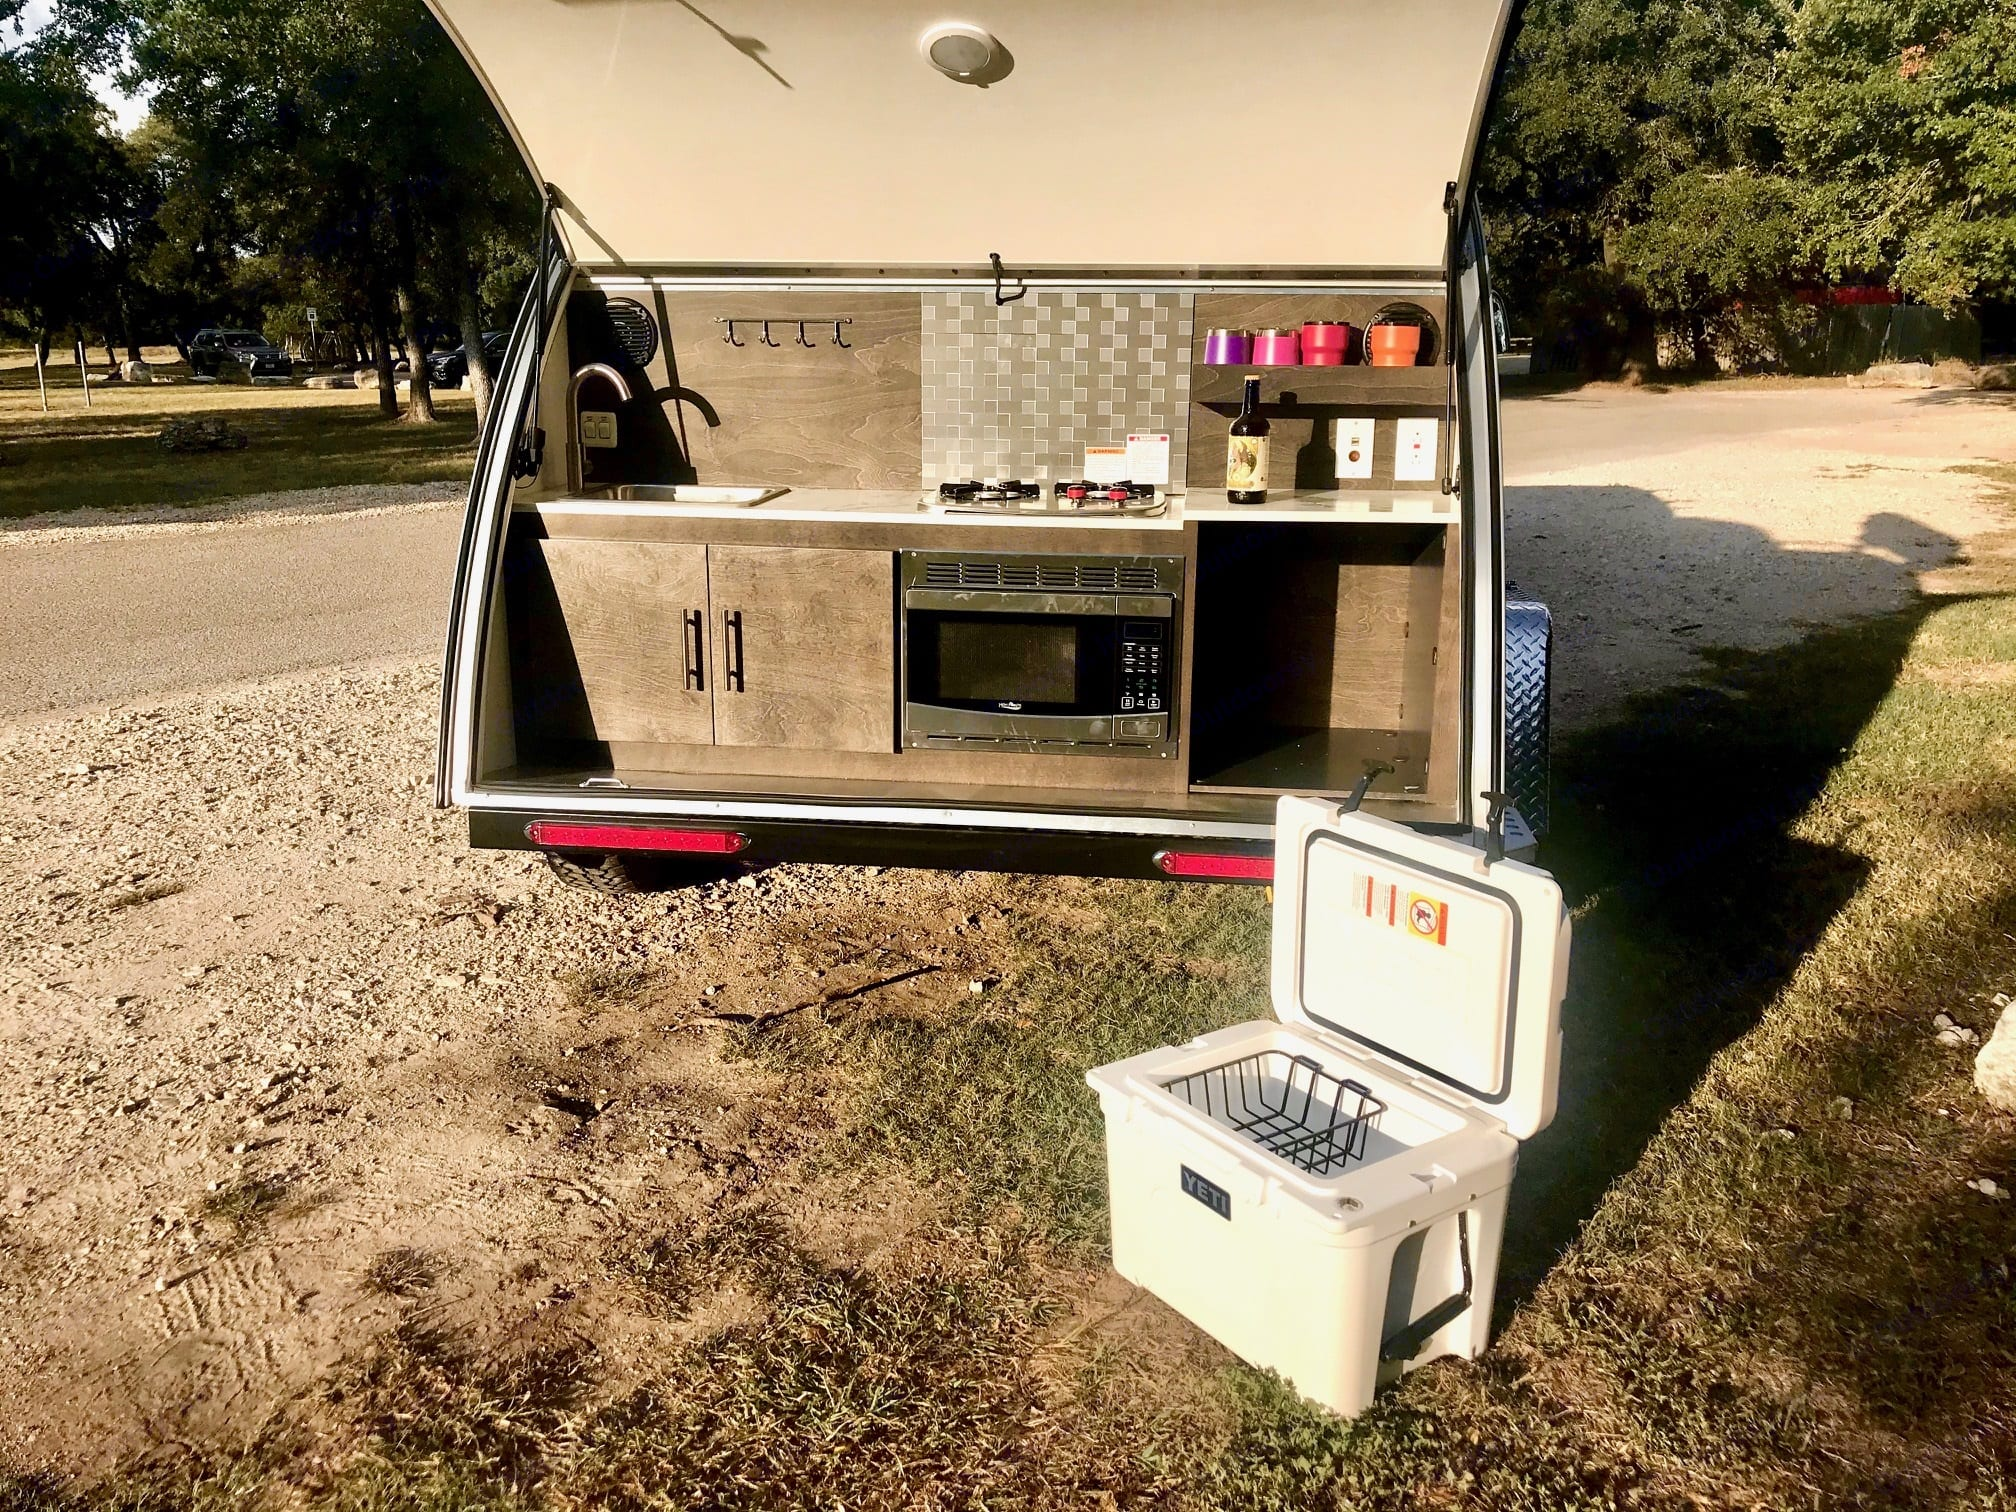 The hatch of the camper lifts up to display a full kitchen with a sink, microwave, two propane burners and a Yeti cooler.. Nucamp T@G XL Boondock 2021